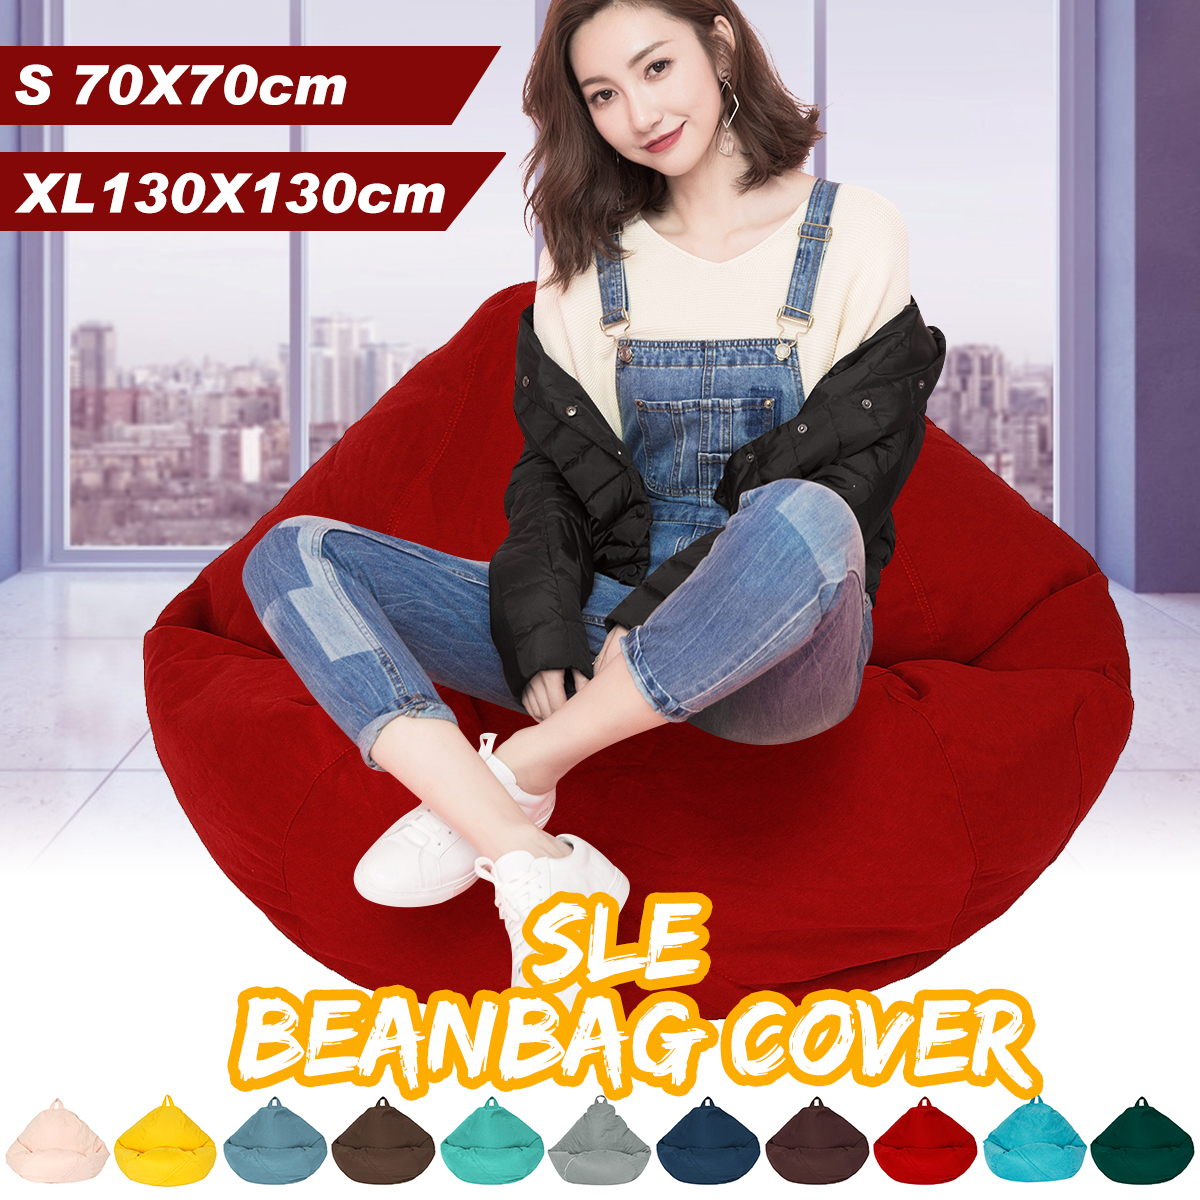 11 Colors 70x70cm Lazy Sofas Cover Chairs Without Filler Linen Cloth Lounger Seat Bean Bag Pouf Puff Couch Tatami Living Room